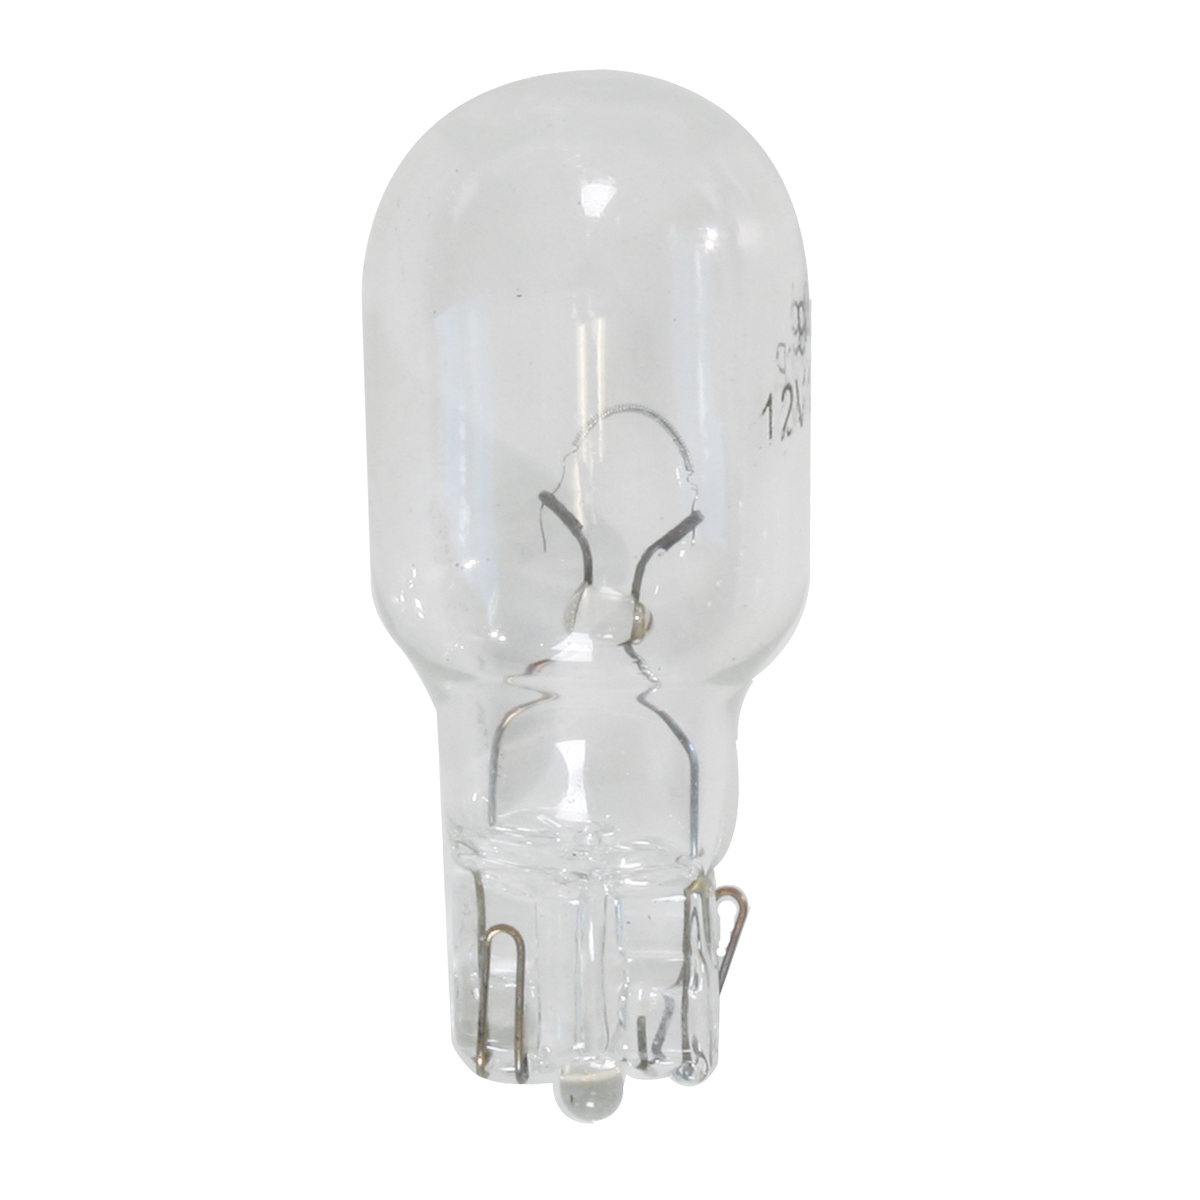 #84052 Miniature Replacement #912 Light Bulb